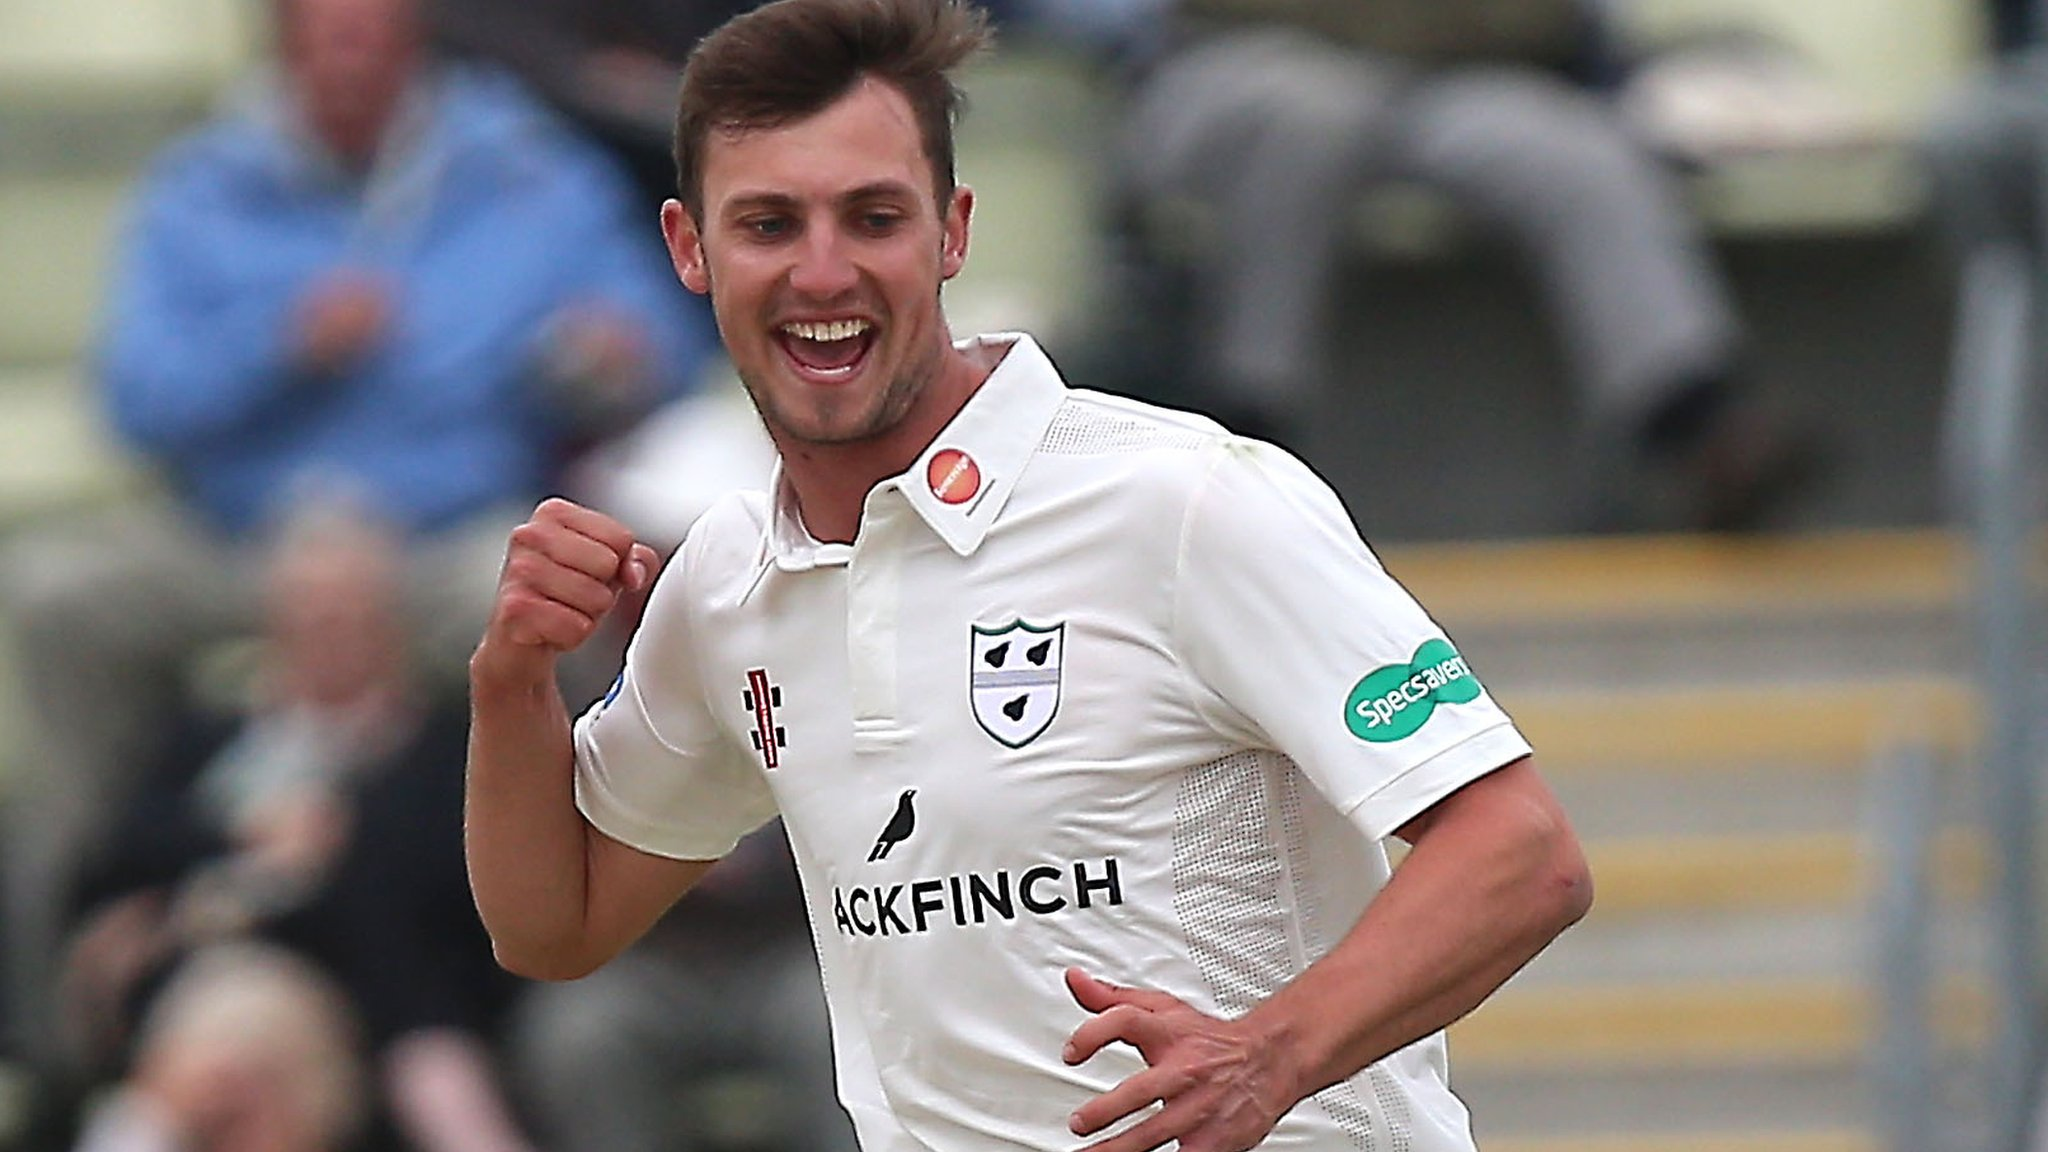 Worcestershire break duck by beating Lancashire